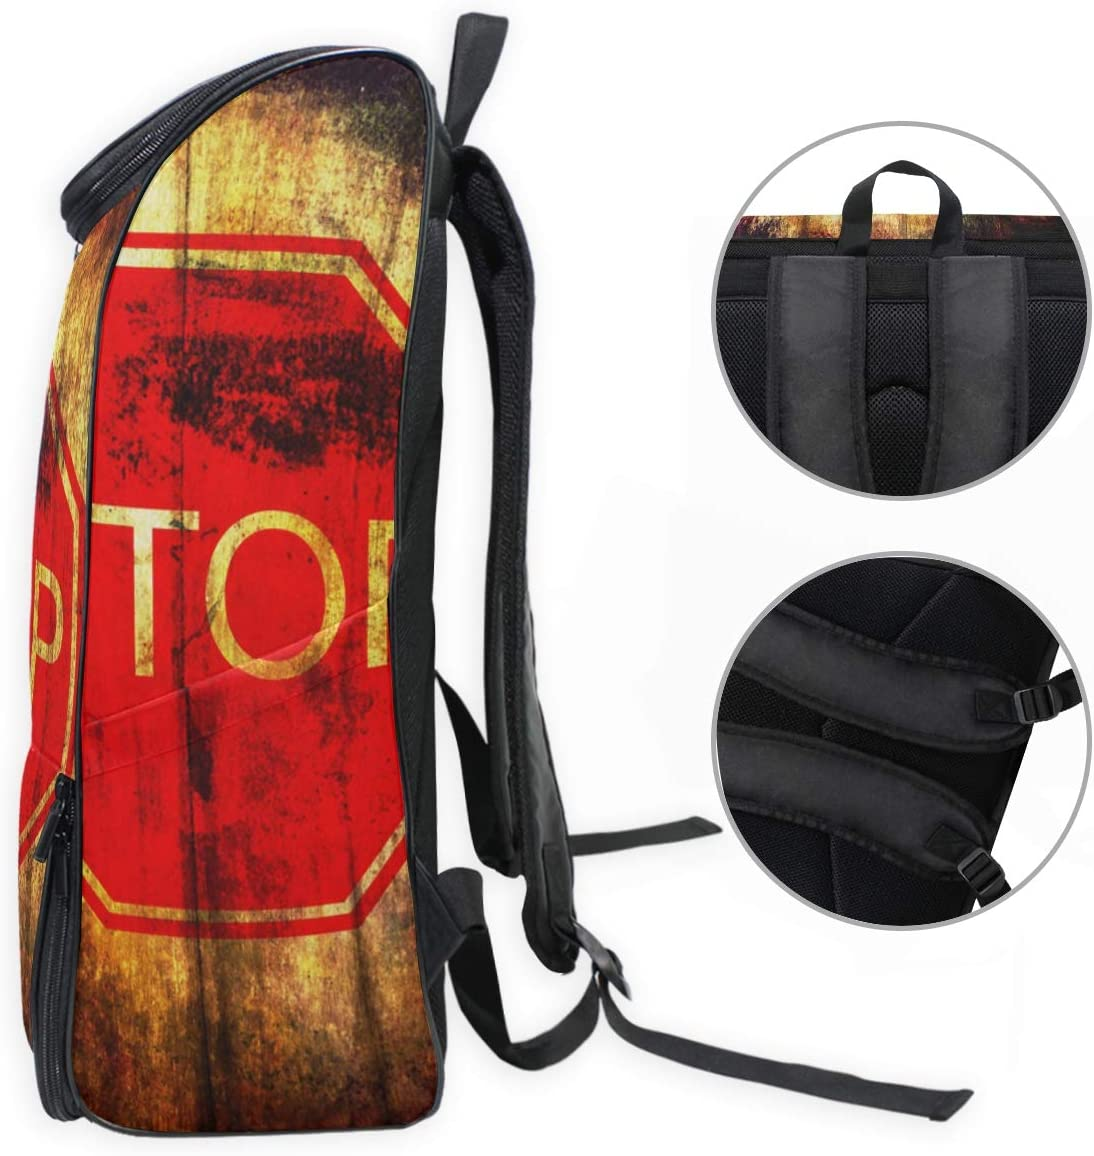 Anmarco Stop Sign On Grunge Wood Background Lightweight Packable Durable Travel Hiking Backpack Daypack for Women Men